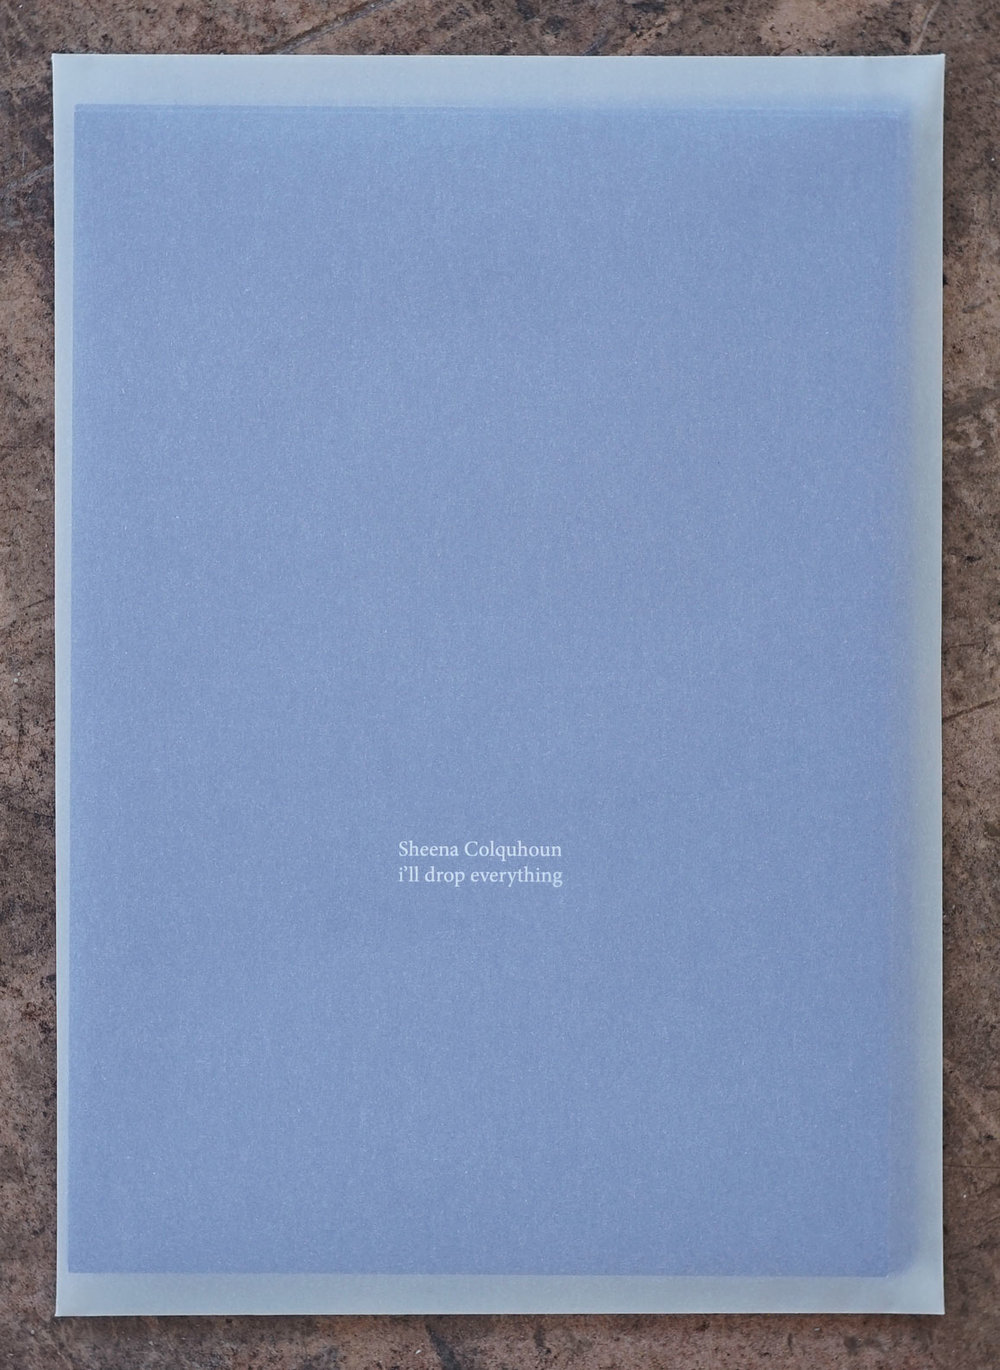 Collection of poetry, I'll drop everything, Launched at  Gertrude Contemporary  alongside  Vinegar